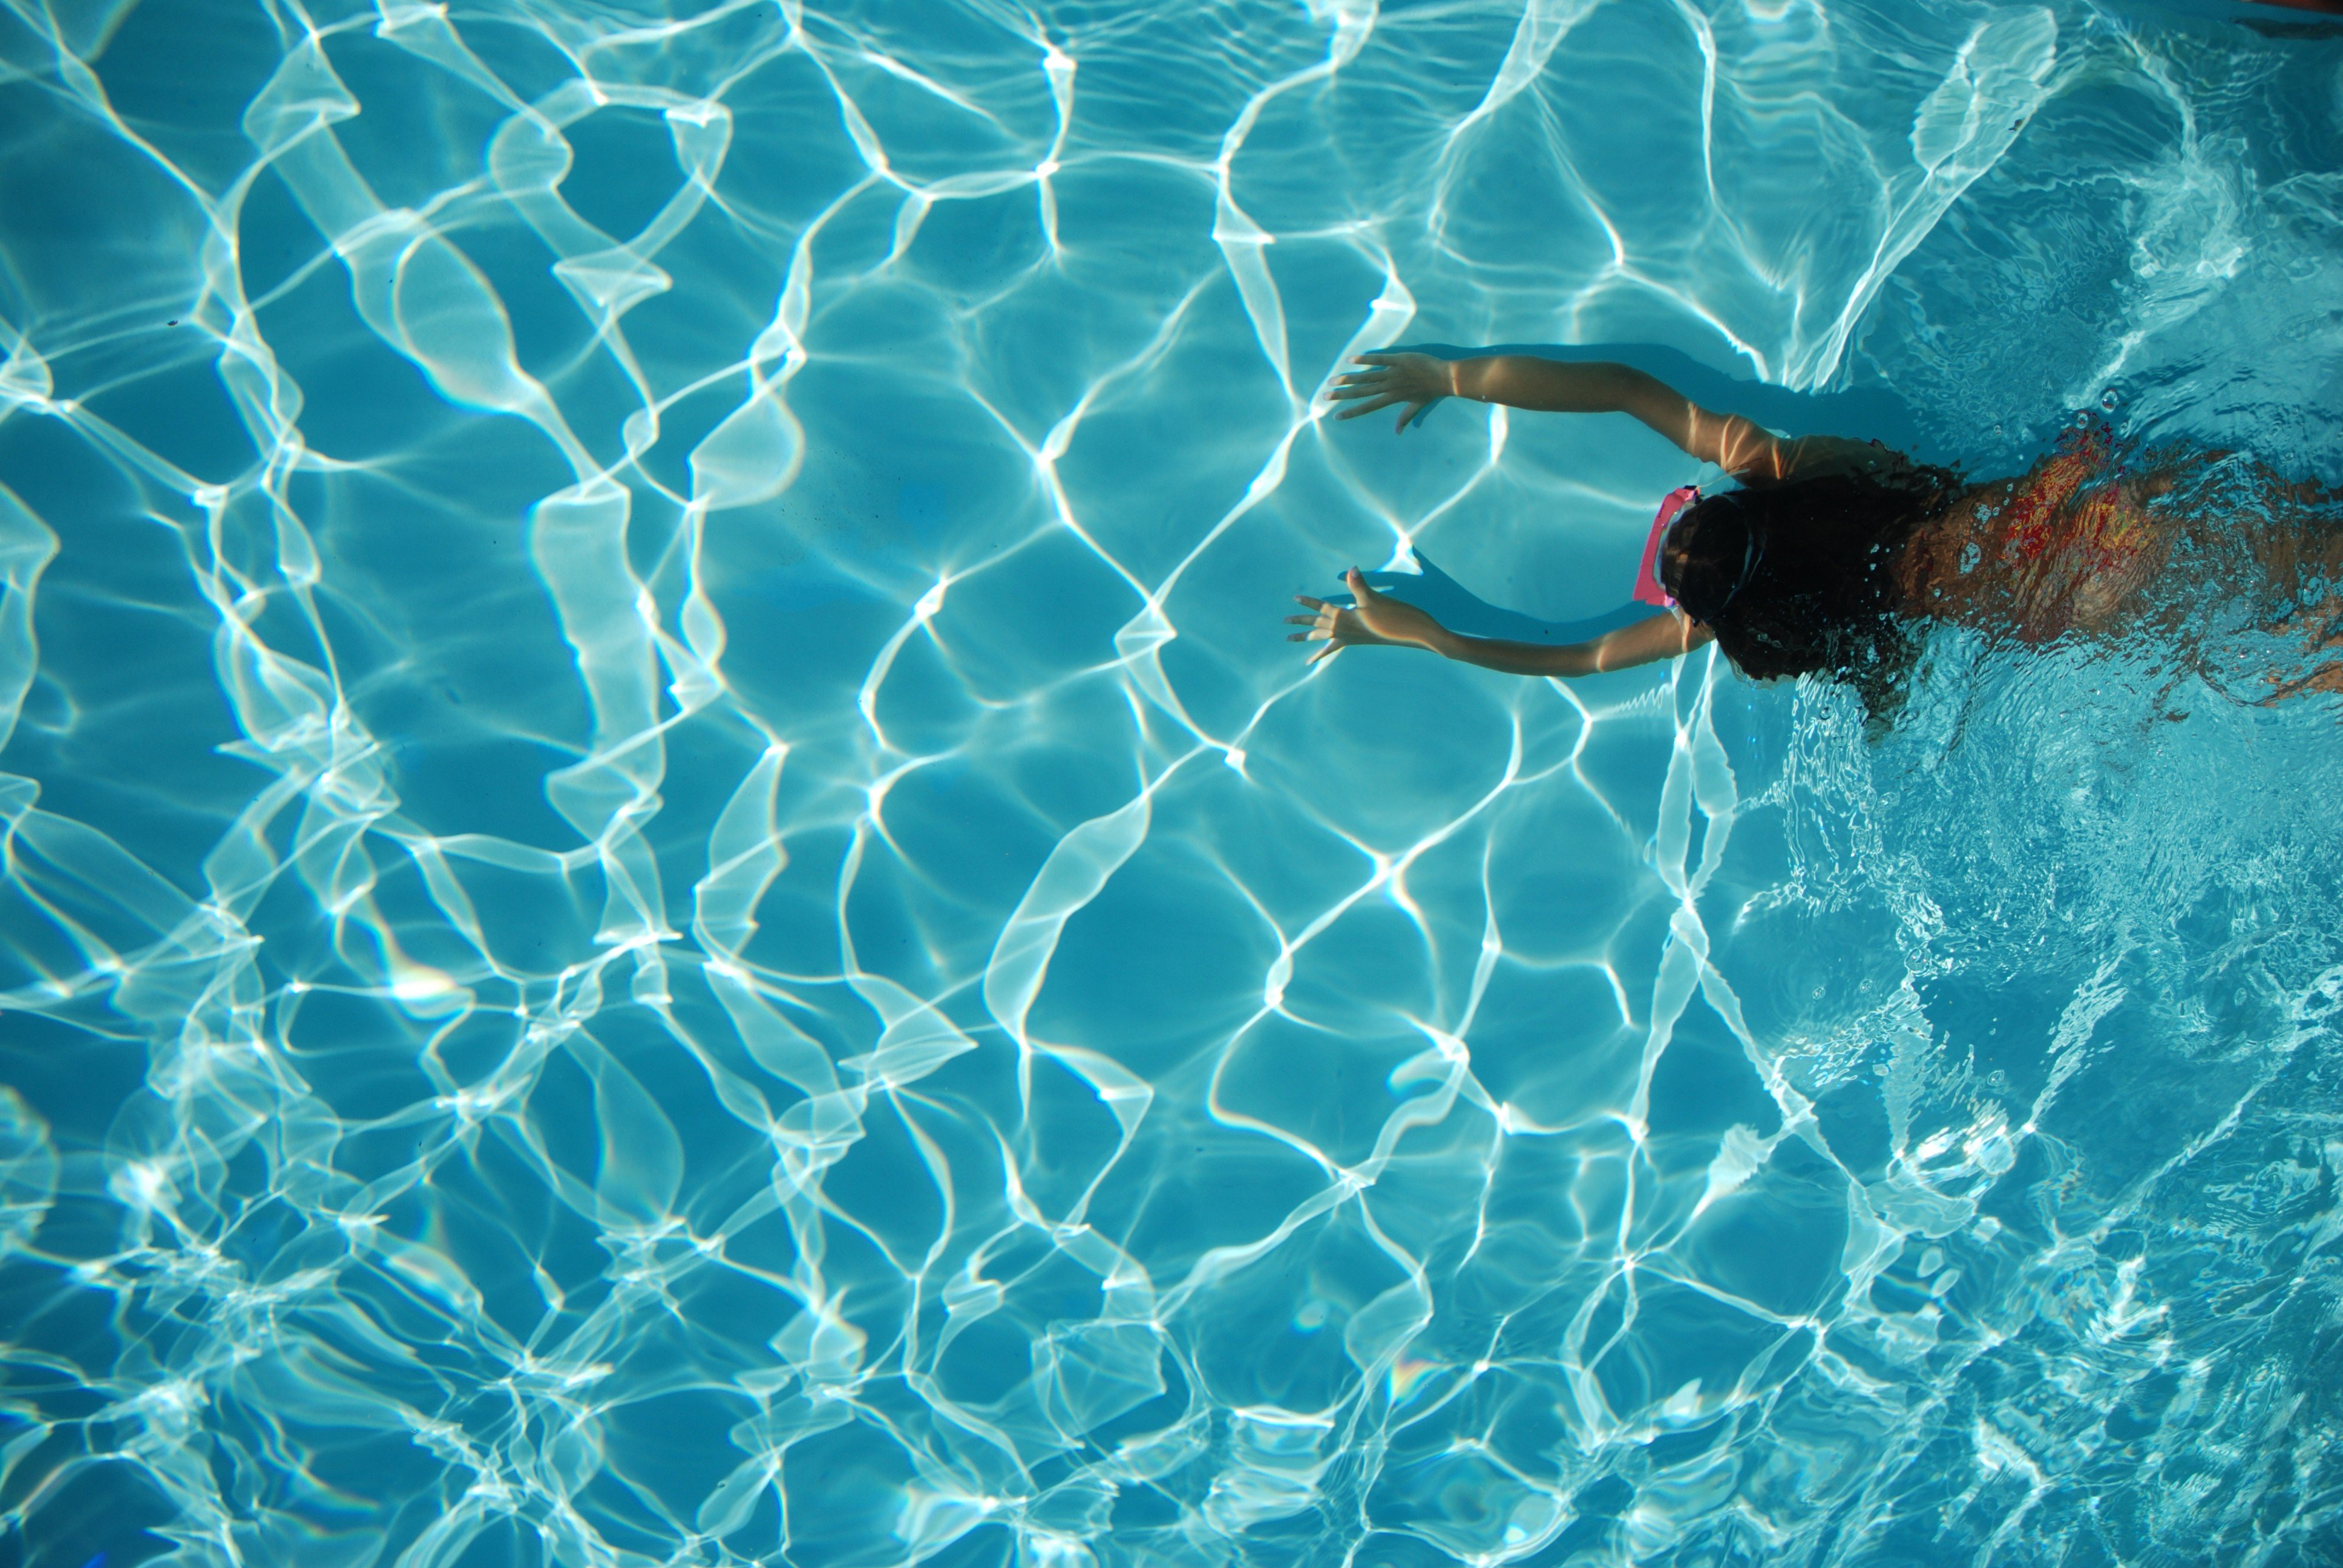 38 water pool wallpaper on wallpapersafari - How much water in a swimming pool ...